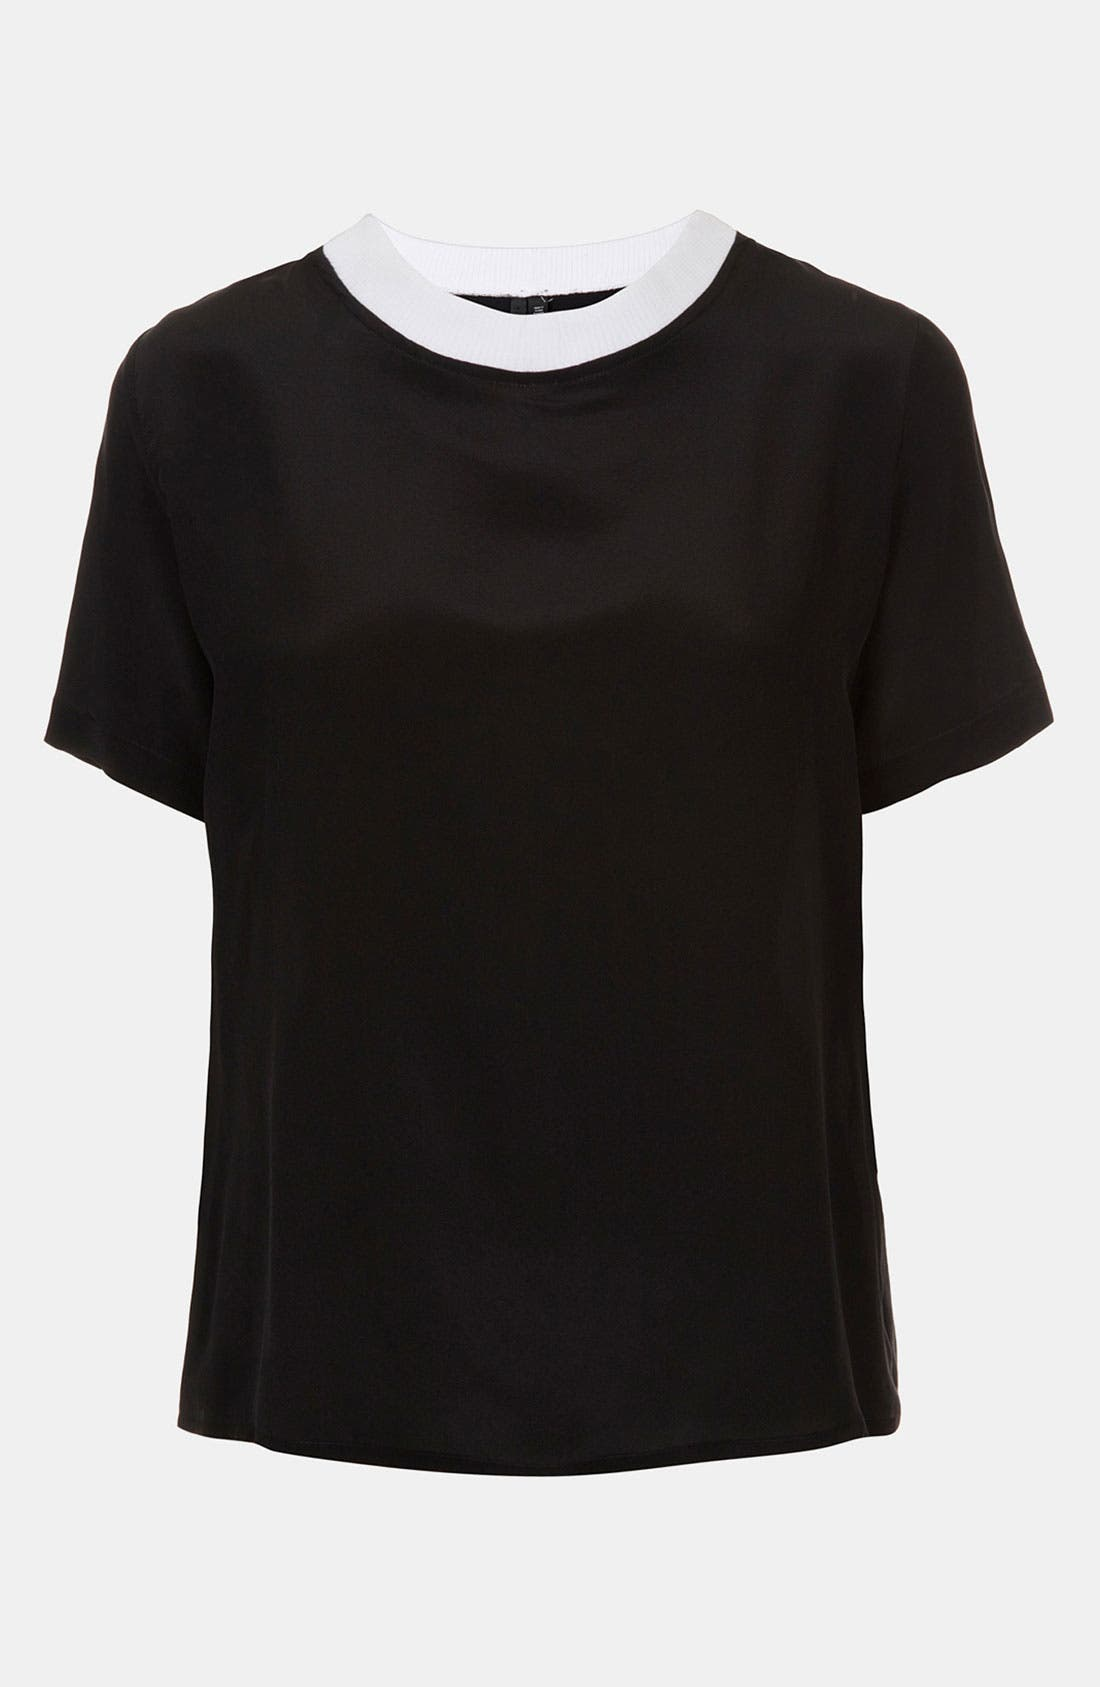 Alternate Image 1 Selected - Topshop Contrast Neck Silk Tee